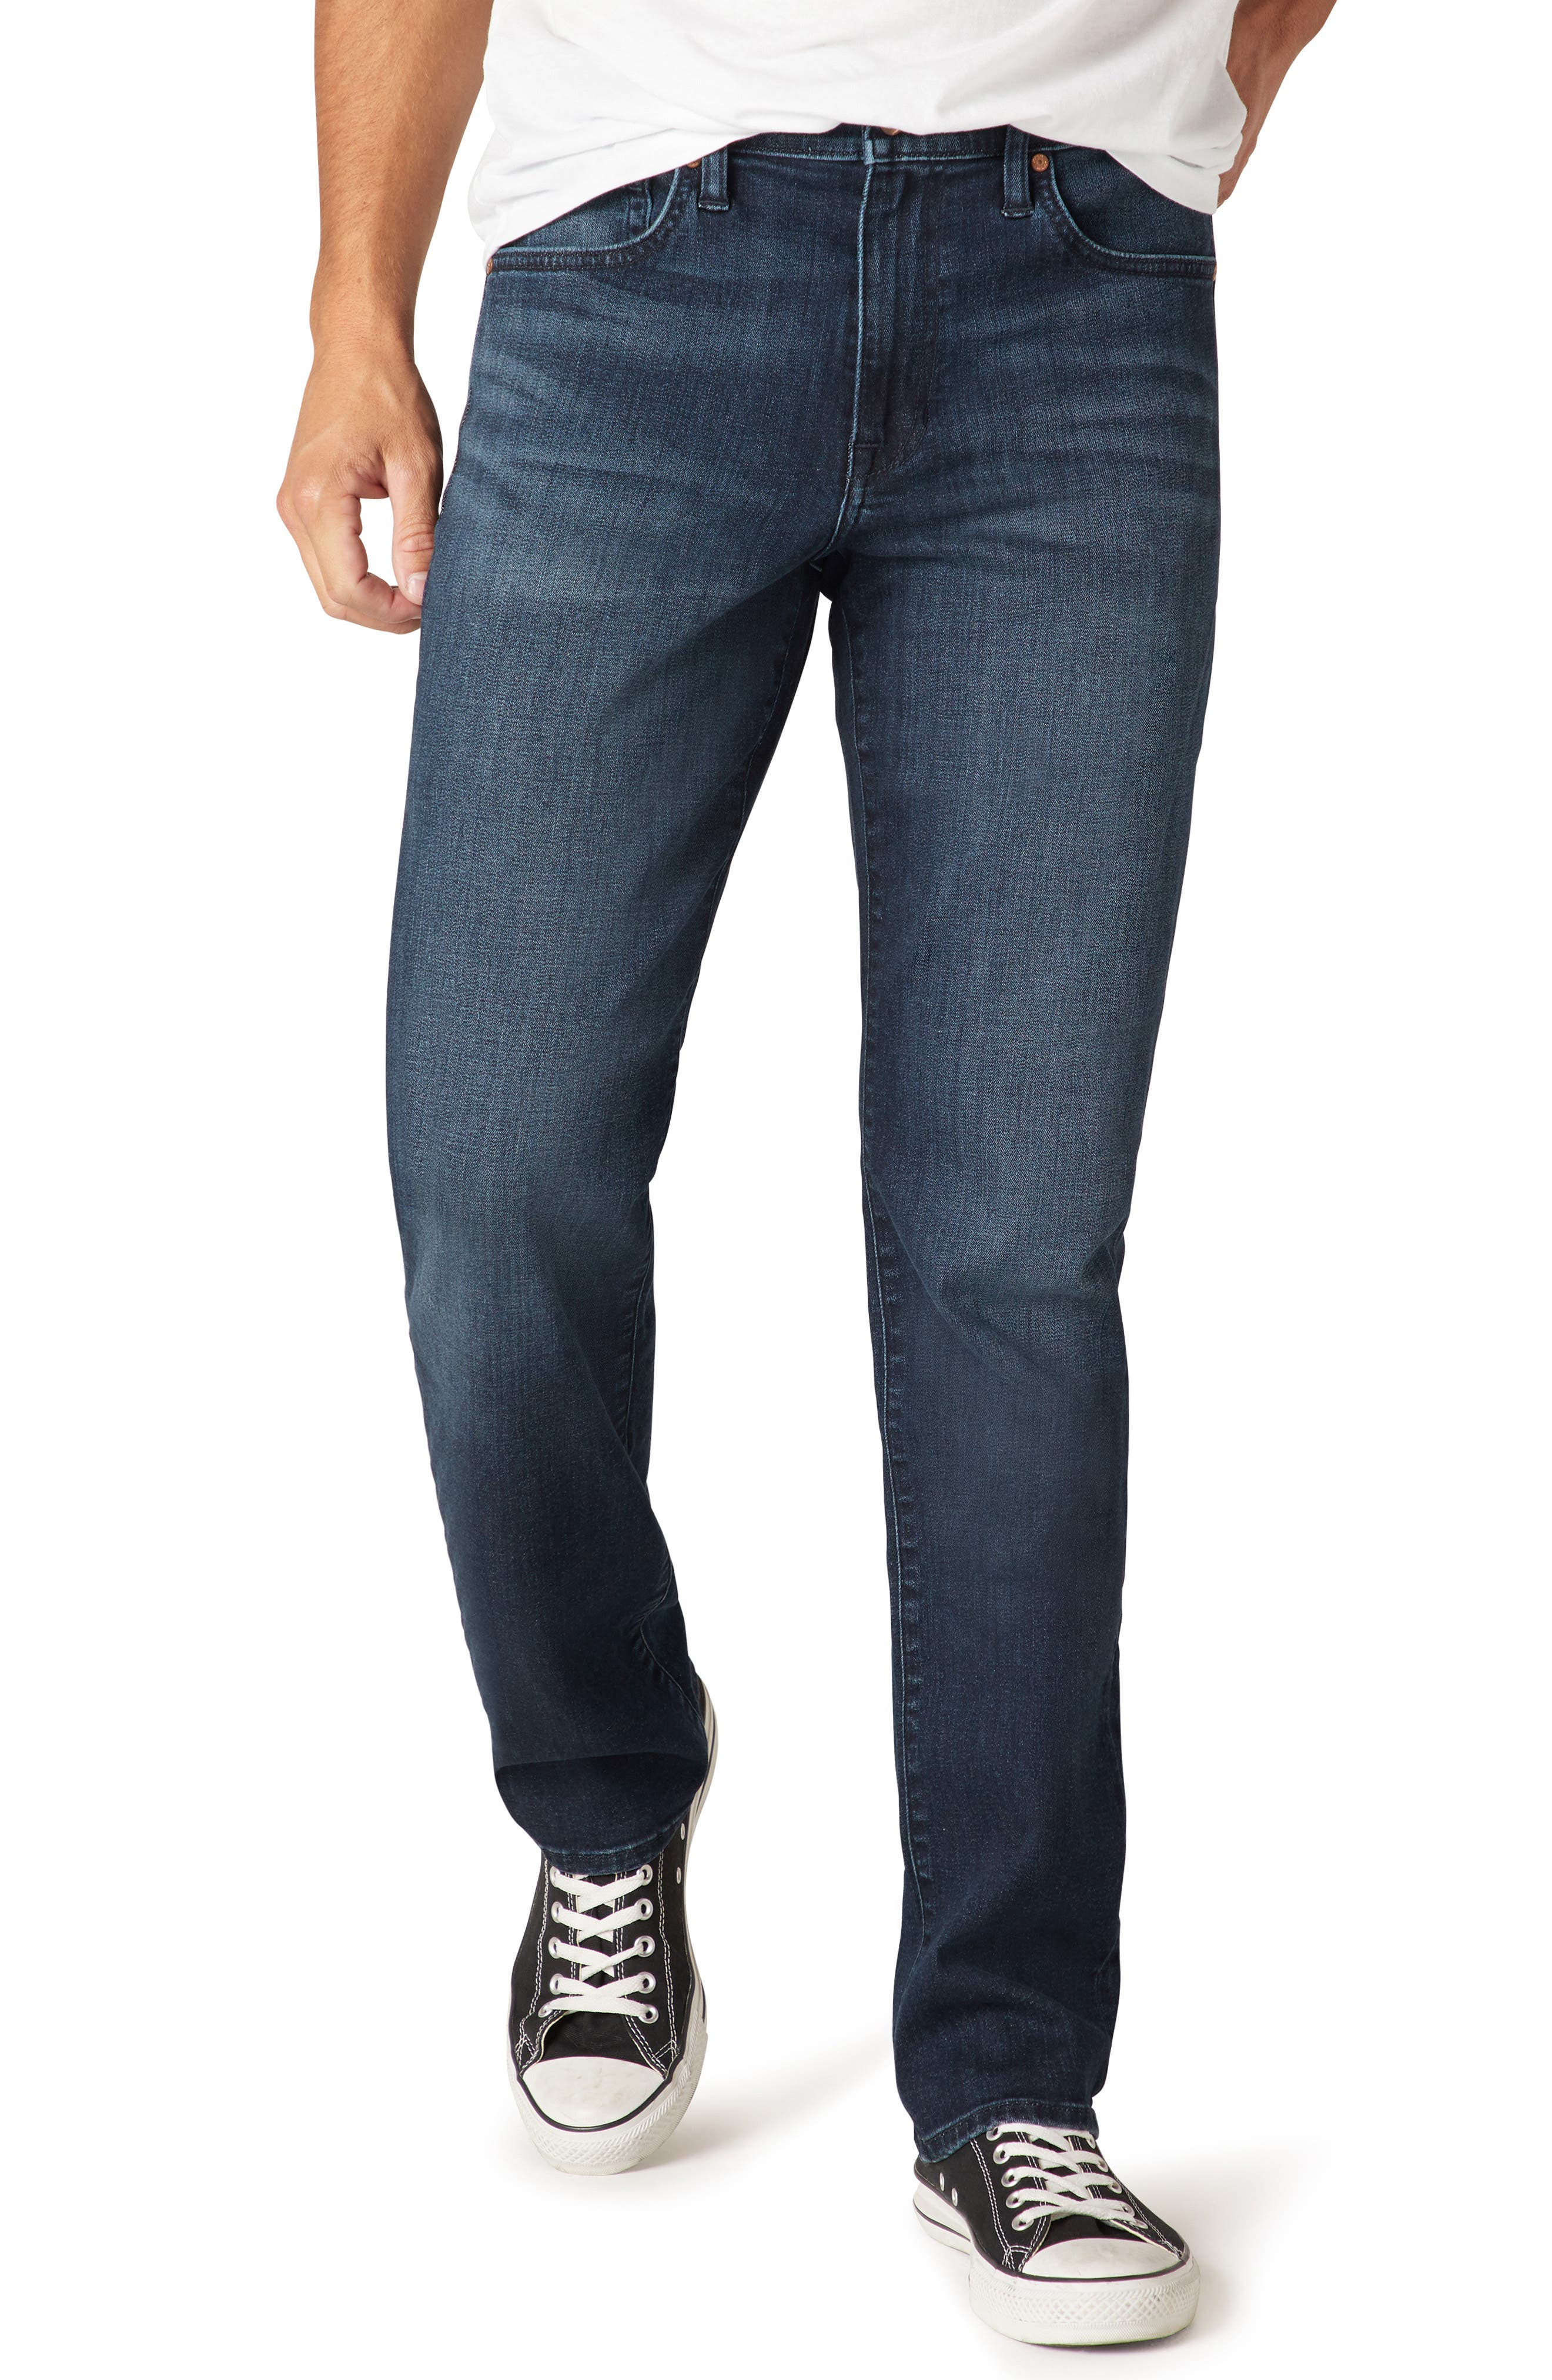 The Classic Straight Leg Jeans